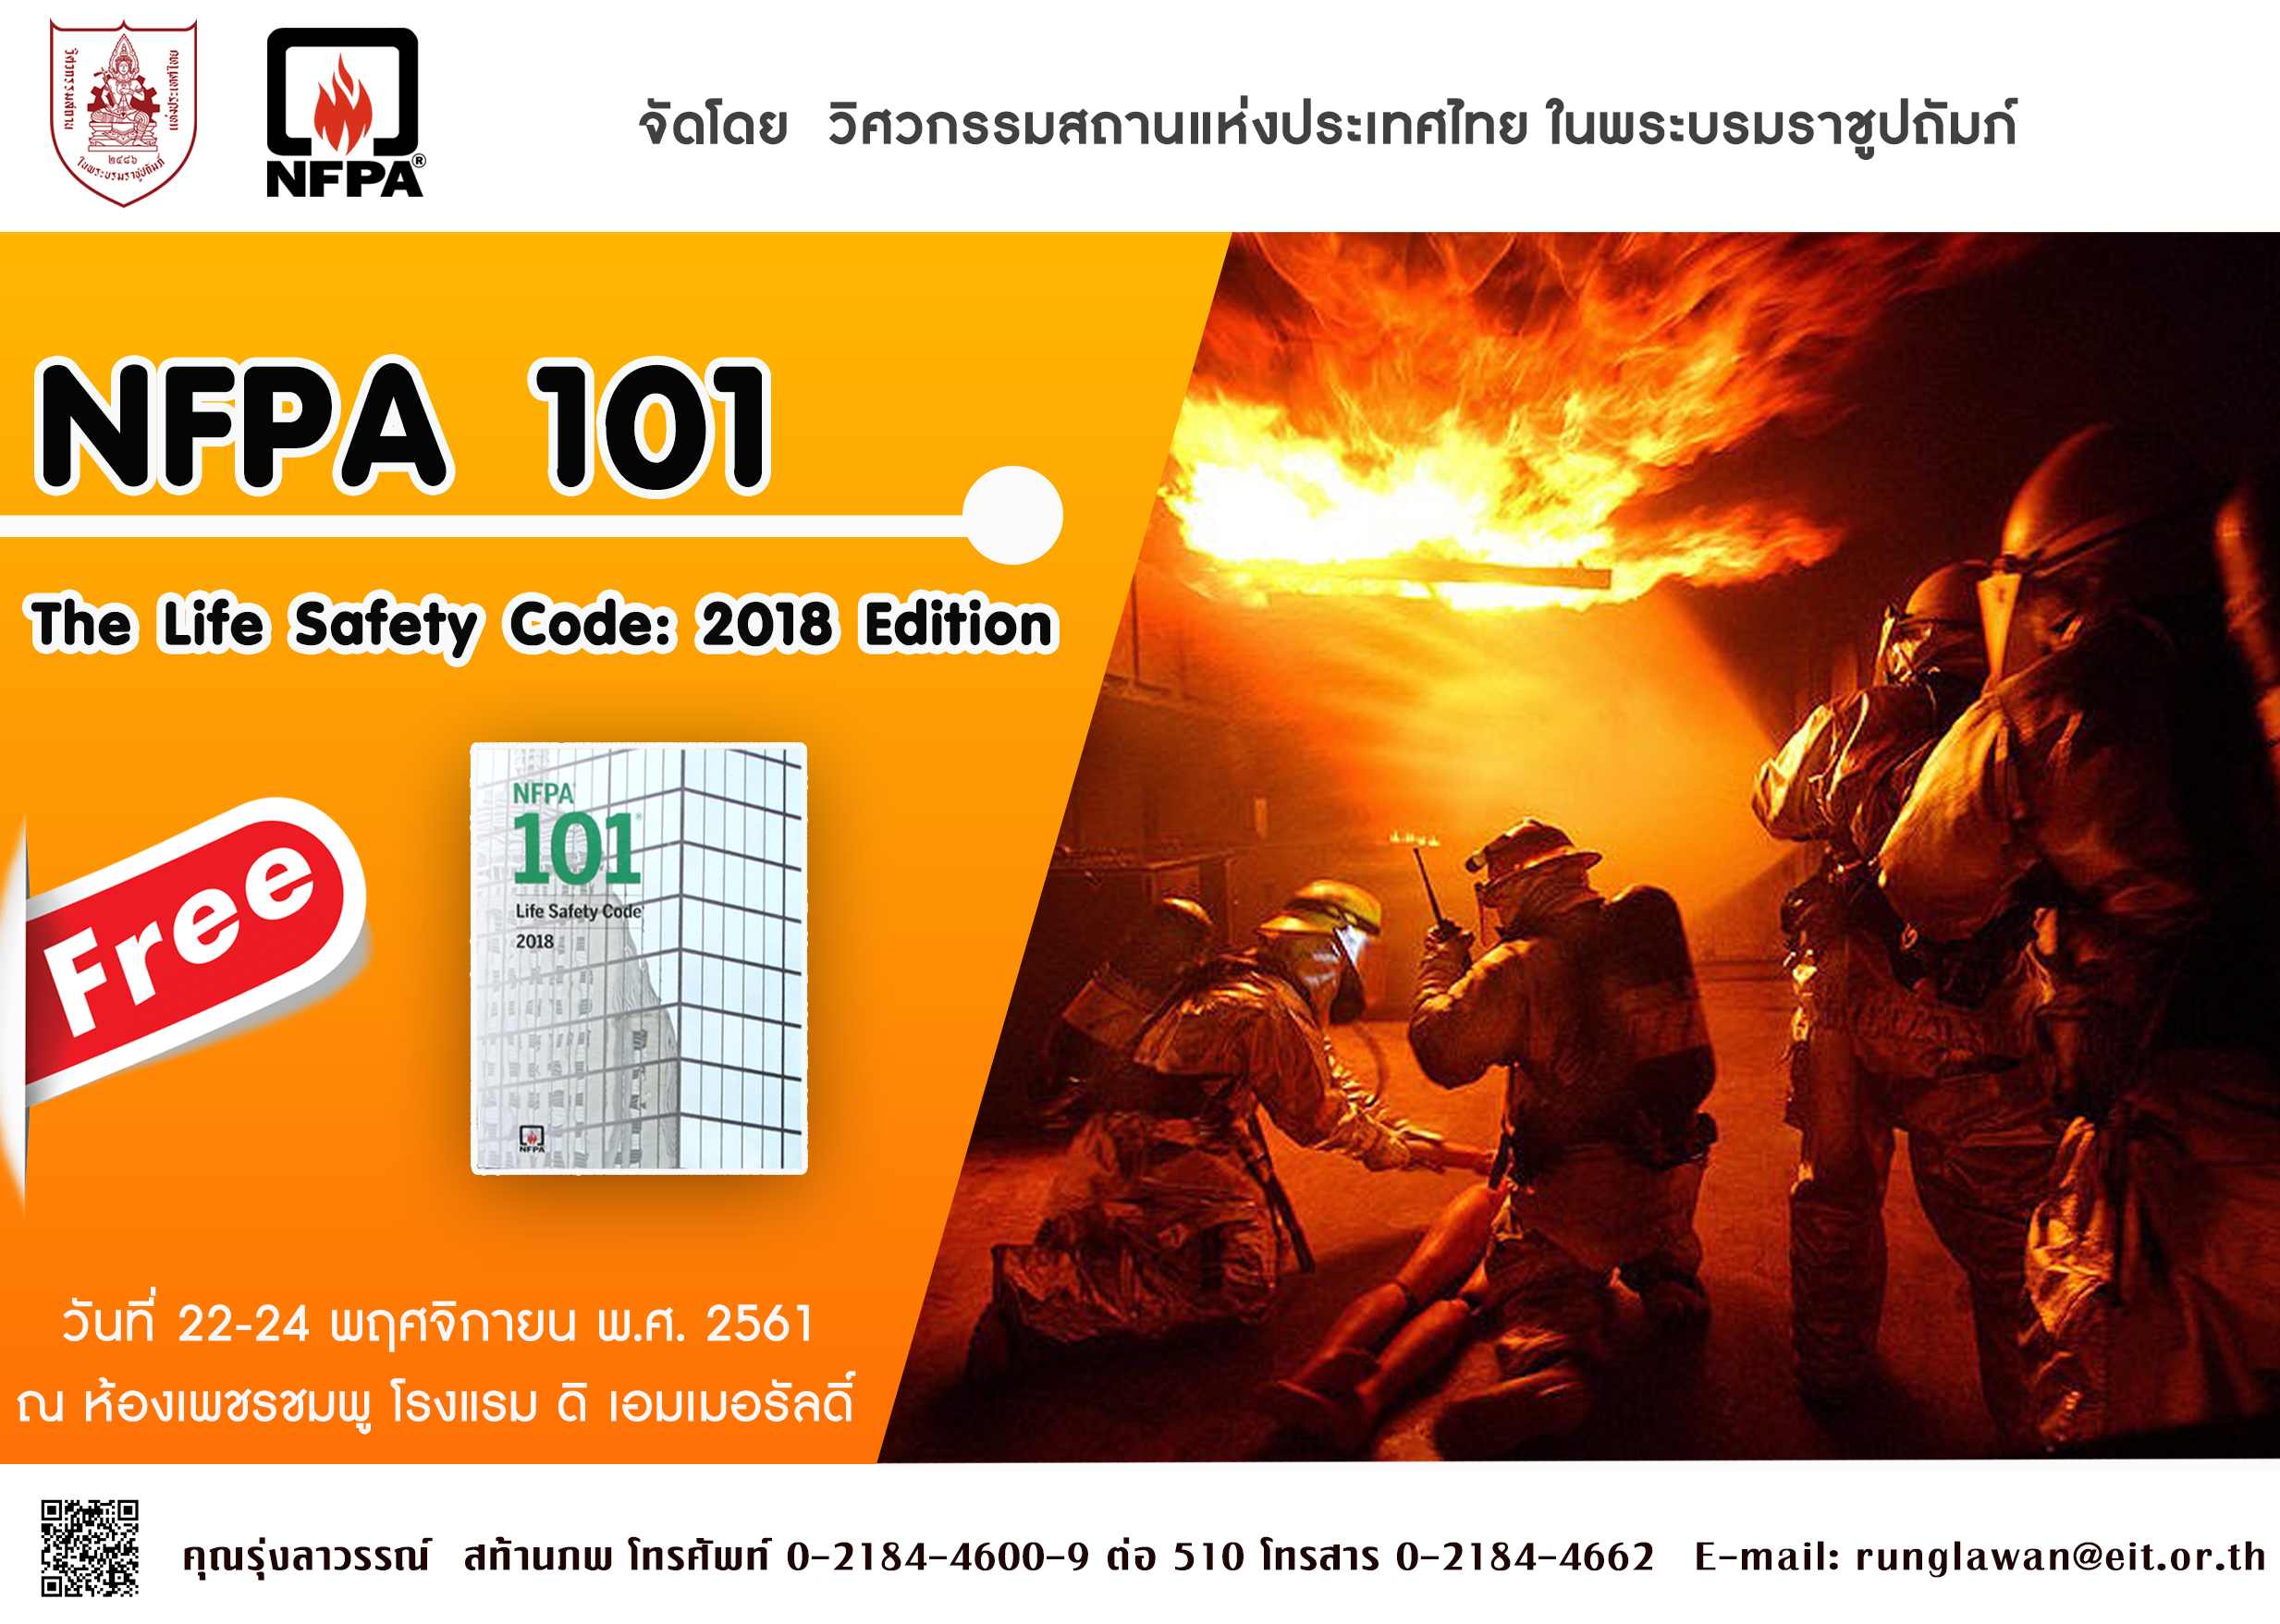 22-24/11/2561 NFPA 101 The Life Safety Code: 2018 Edition